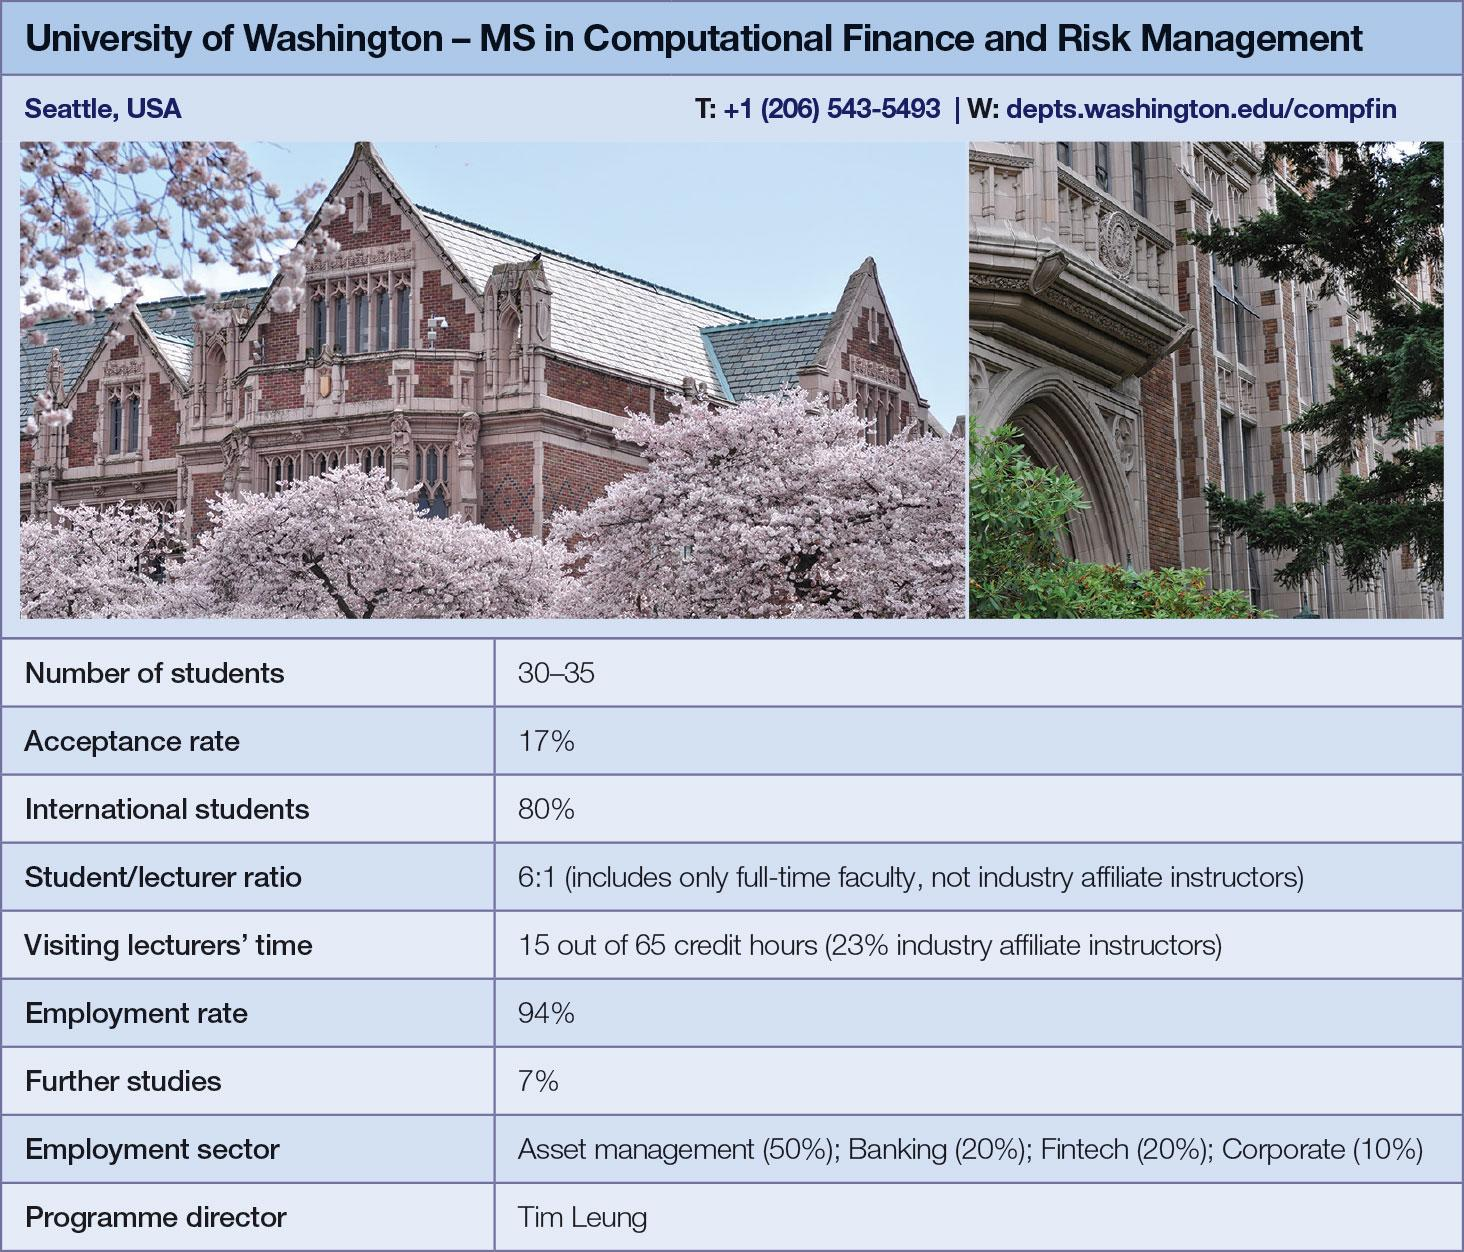 University of Washington metrics